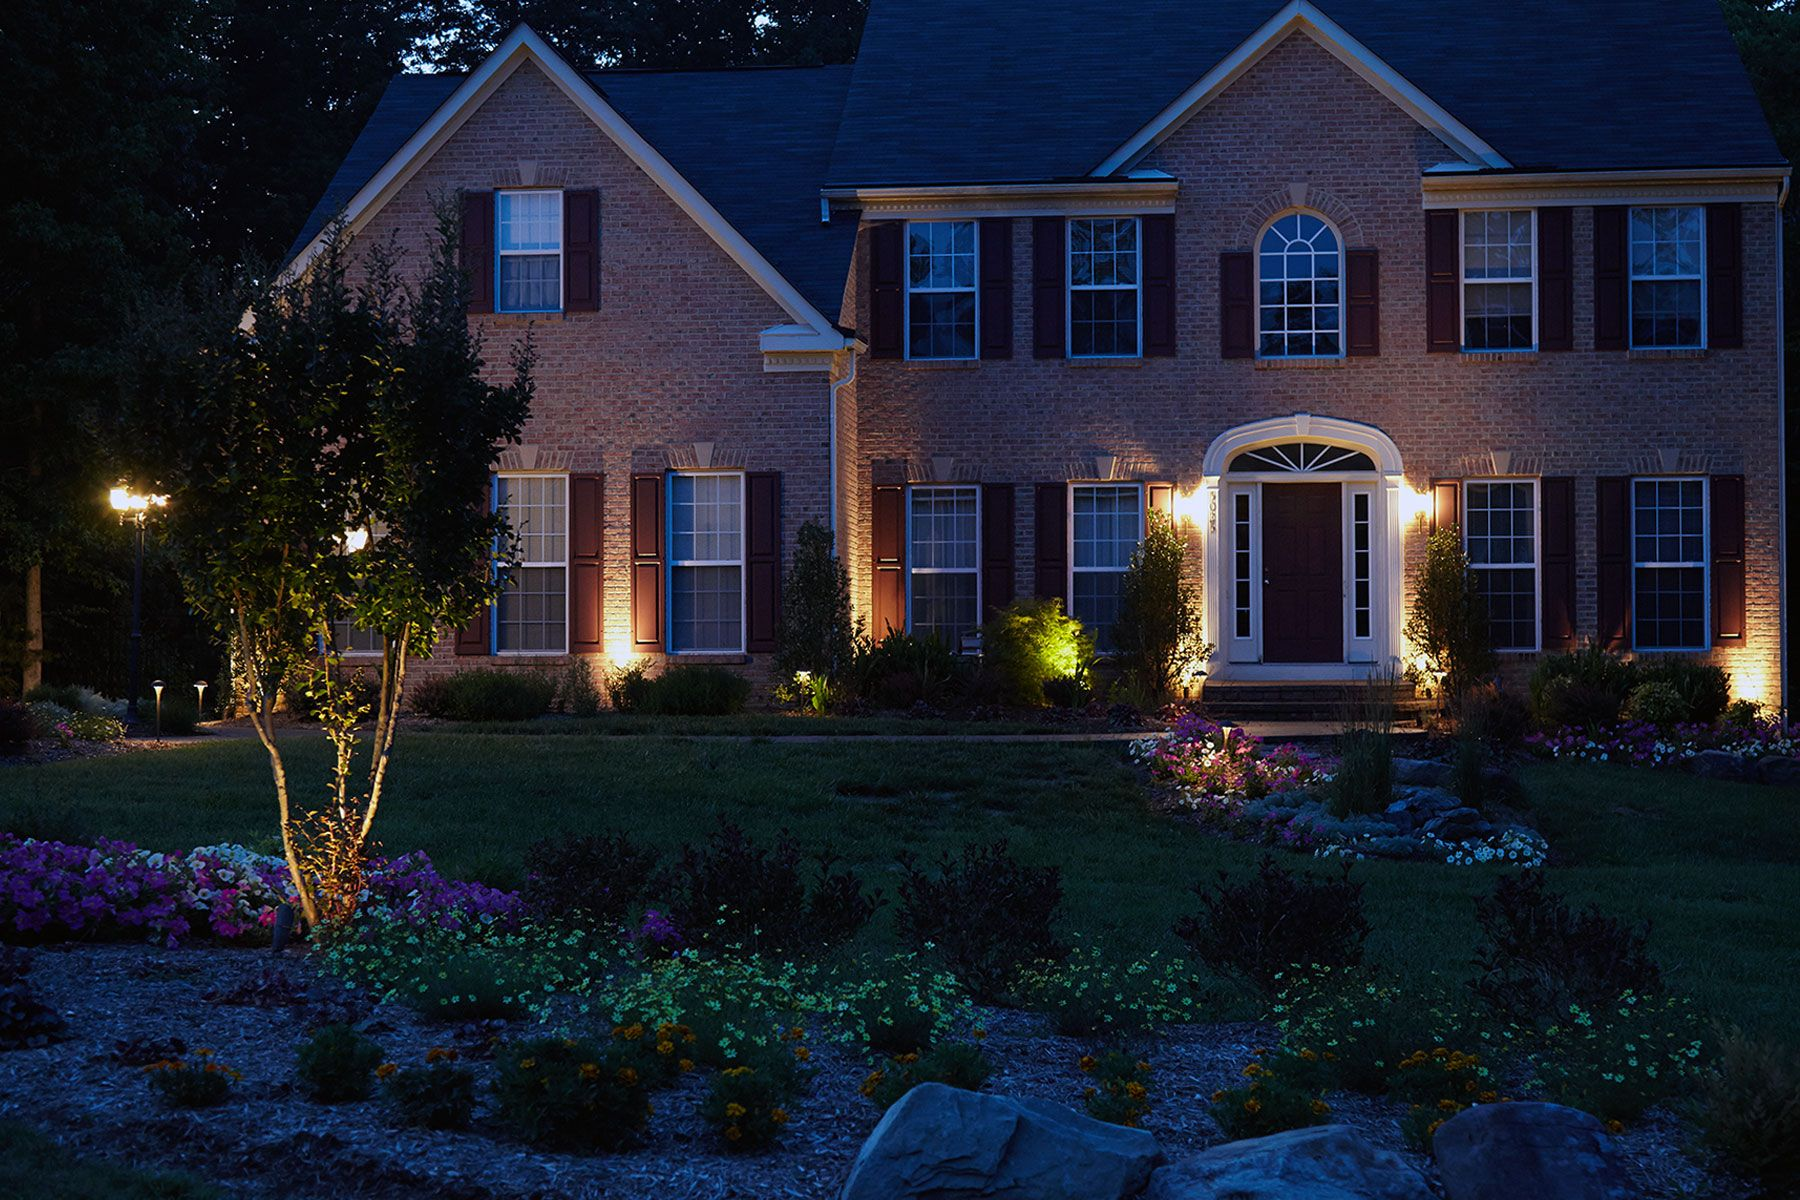 Www Sharpercut Com Brandywine Md Front Entry Way Hardscapes And Plantings Night Lighting House Styles Landscape Lighting Hardscape